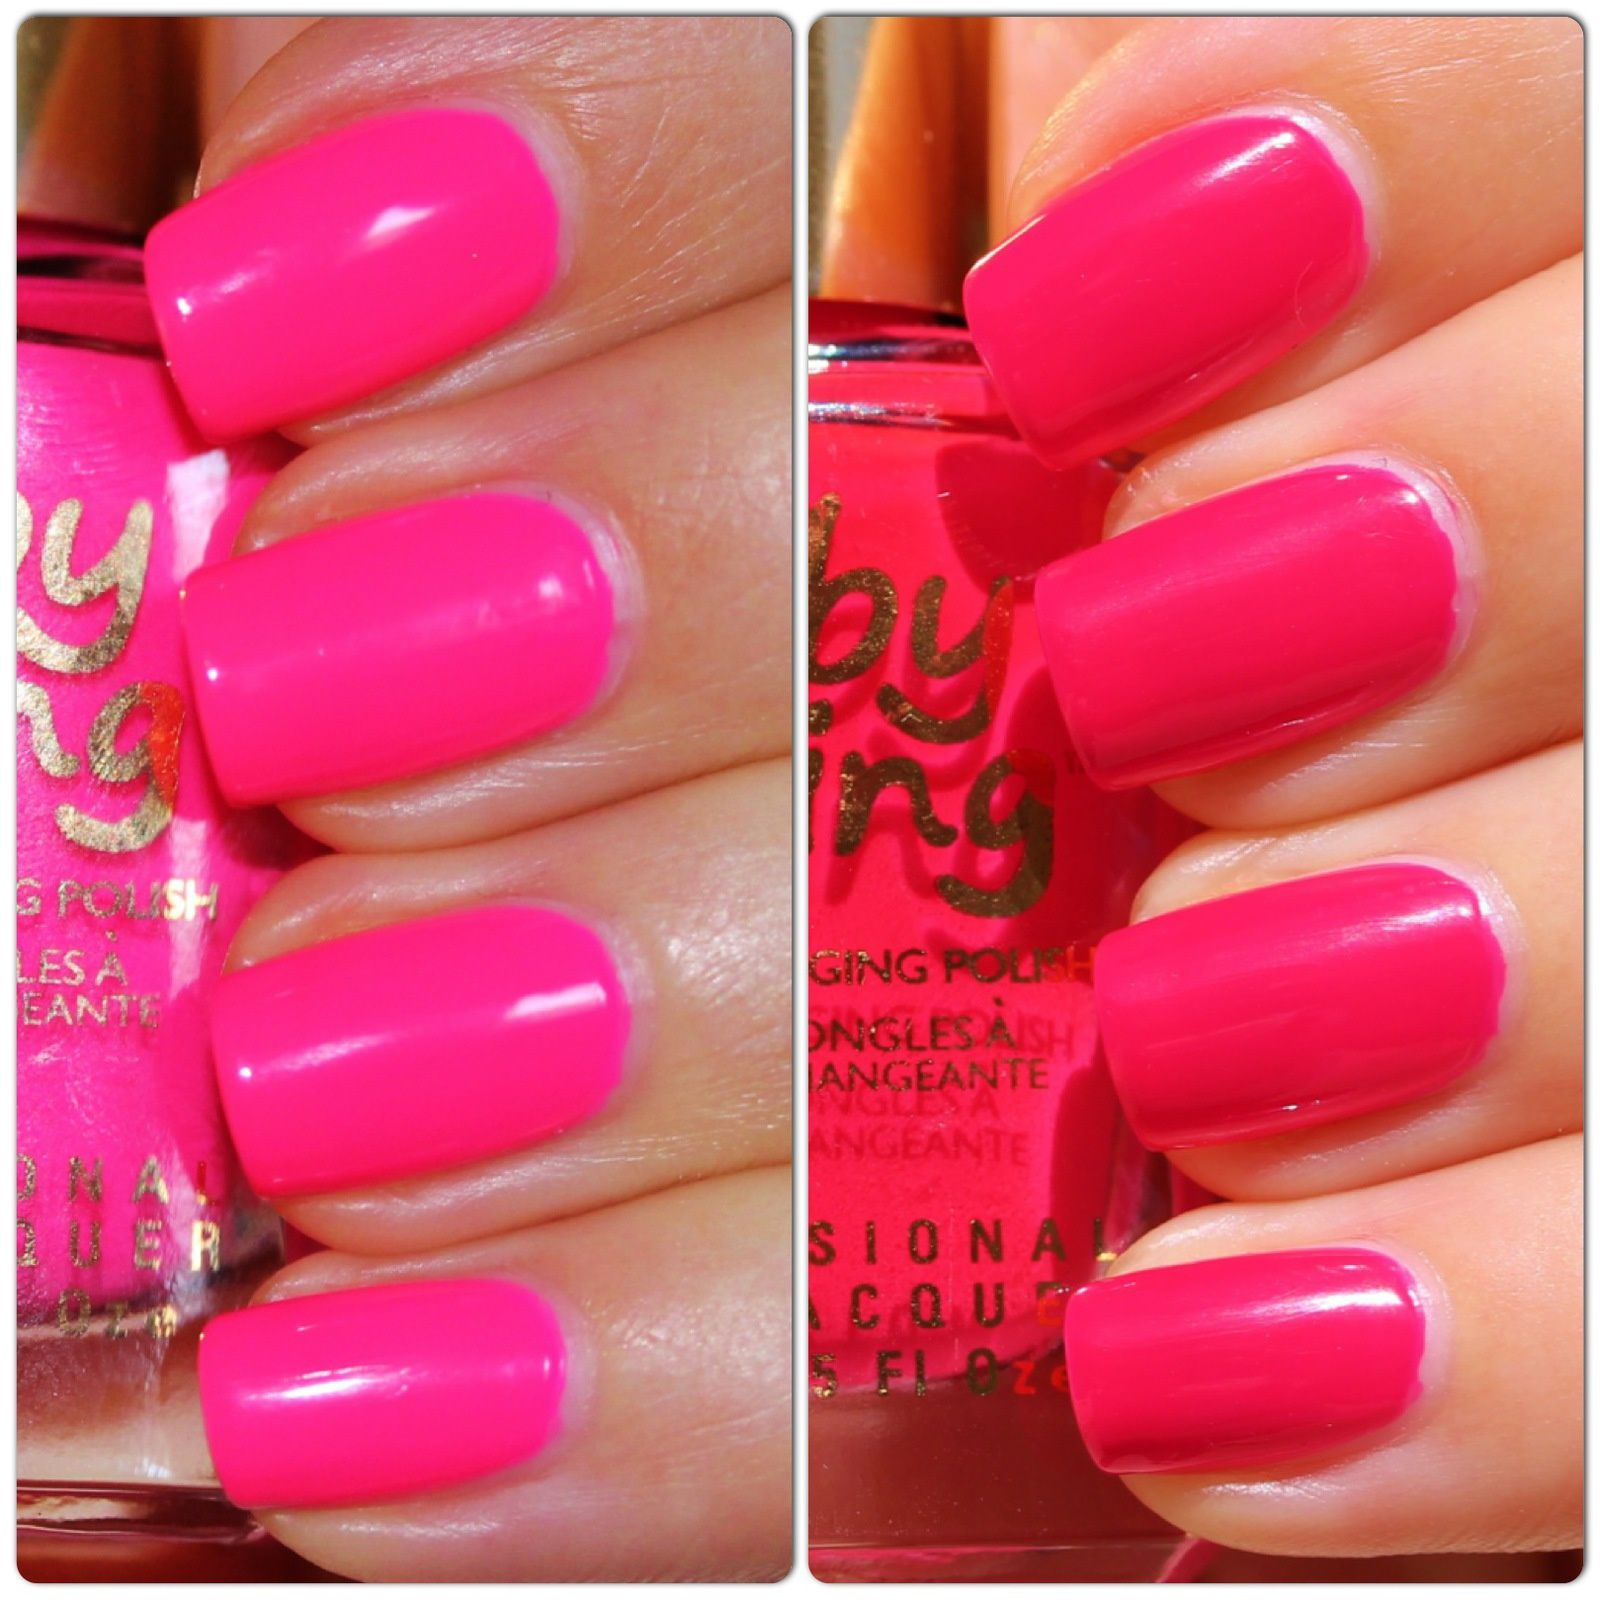 Ruby Wing Groupie (UV Color Changing Polish)